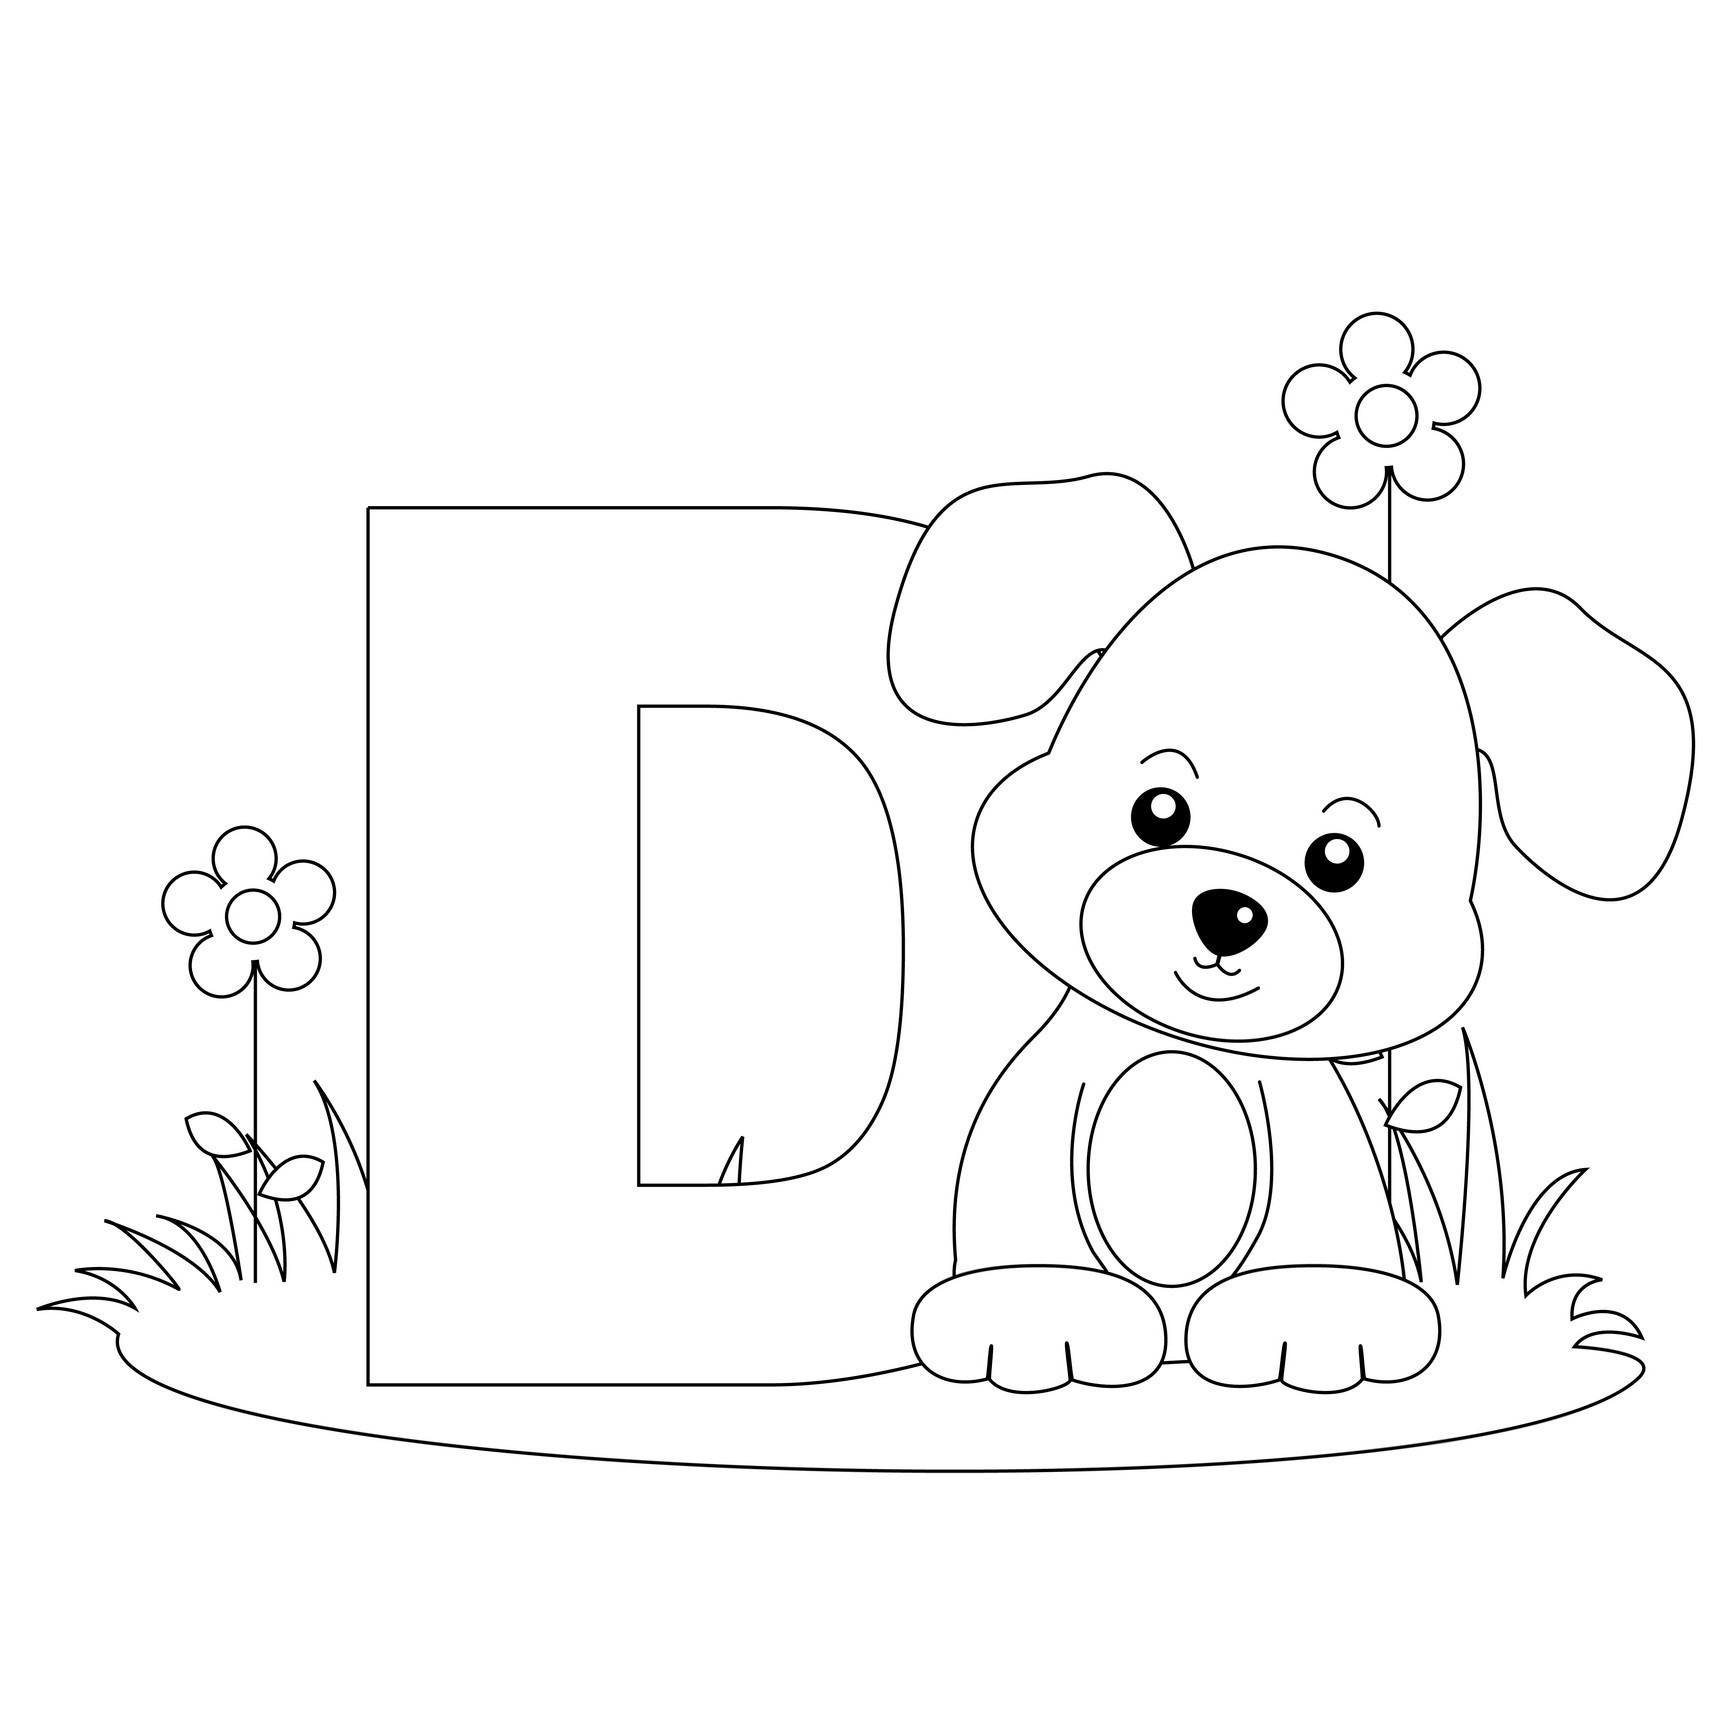 animal alphabet colouring pages printable animal alphabet worksheets letter g is for pages colouring animal alphabet